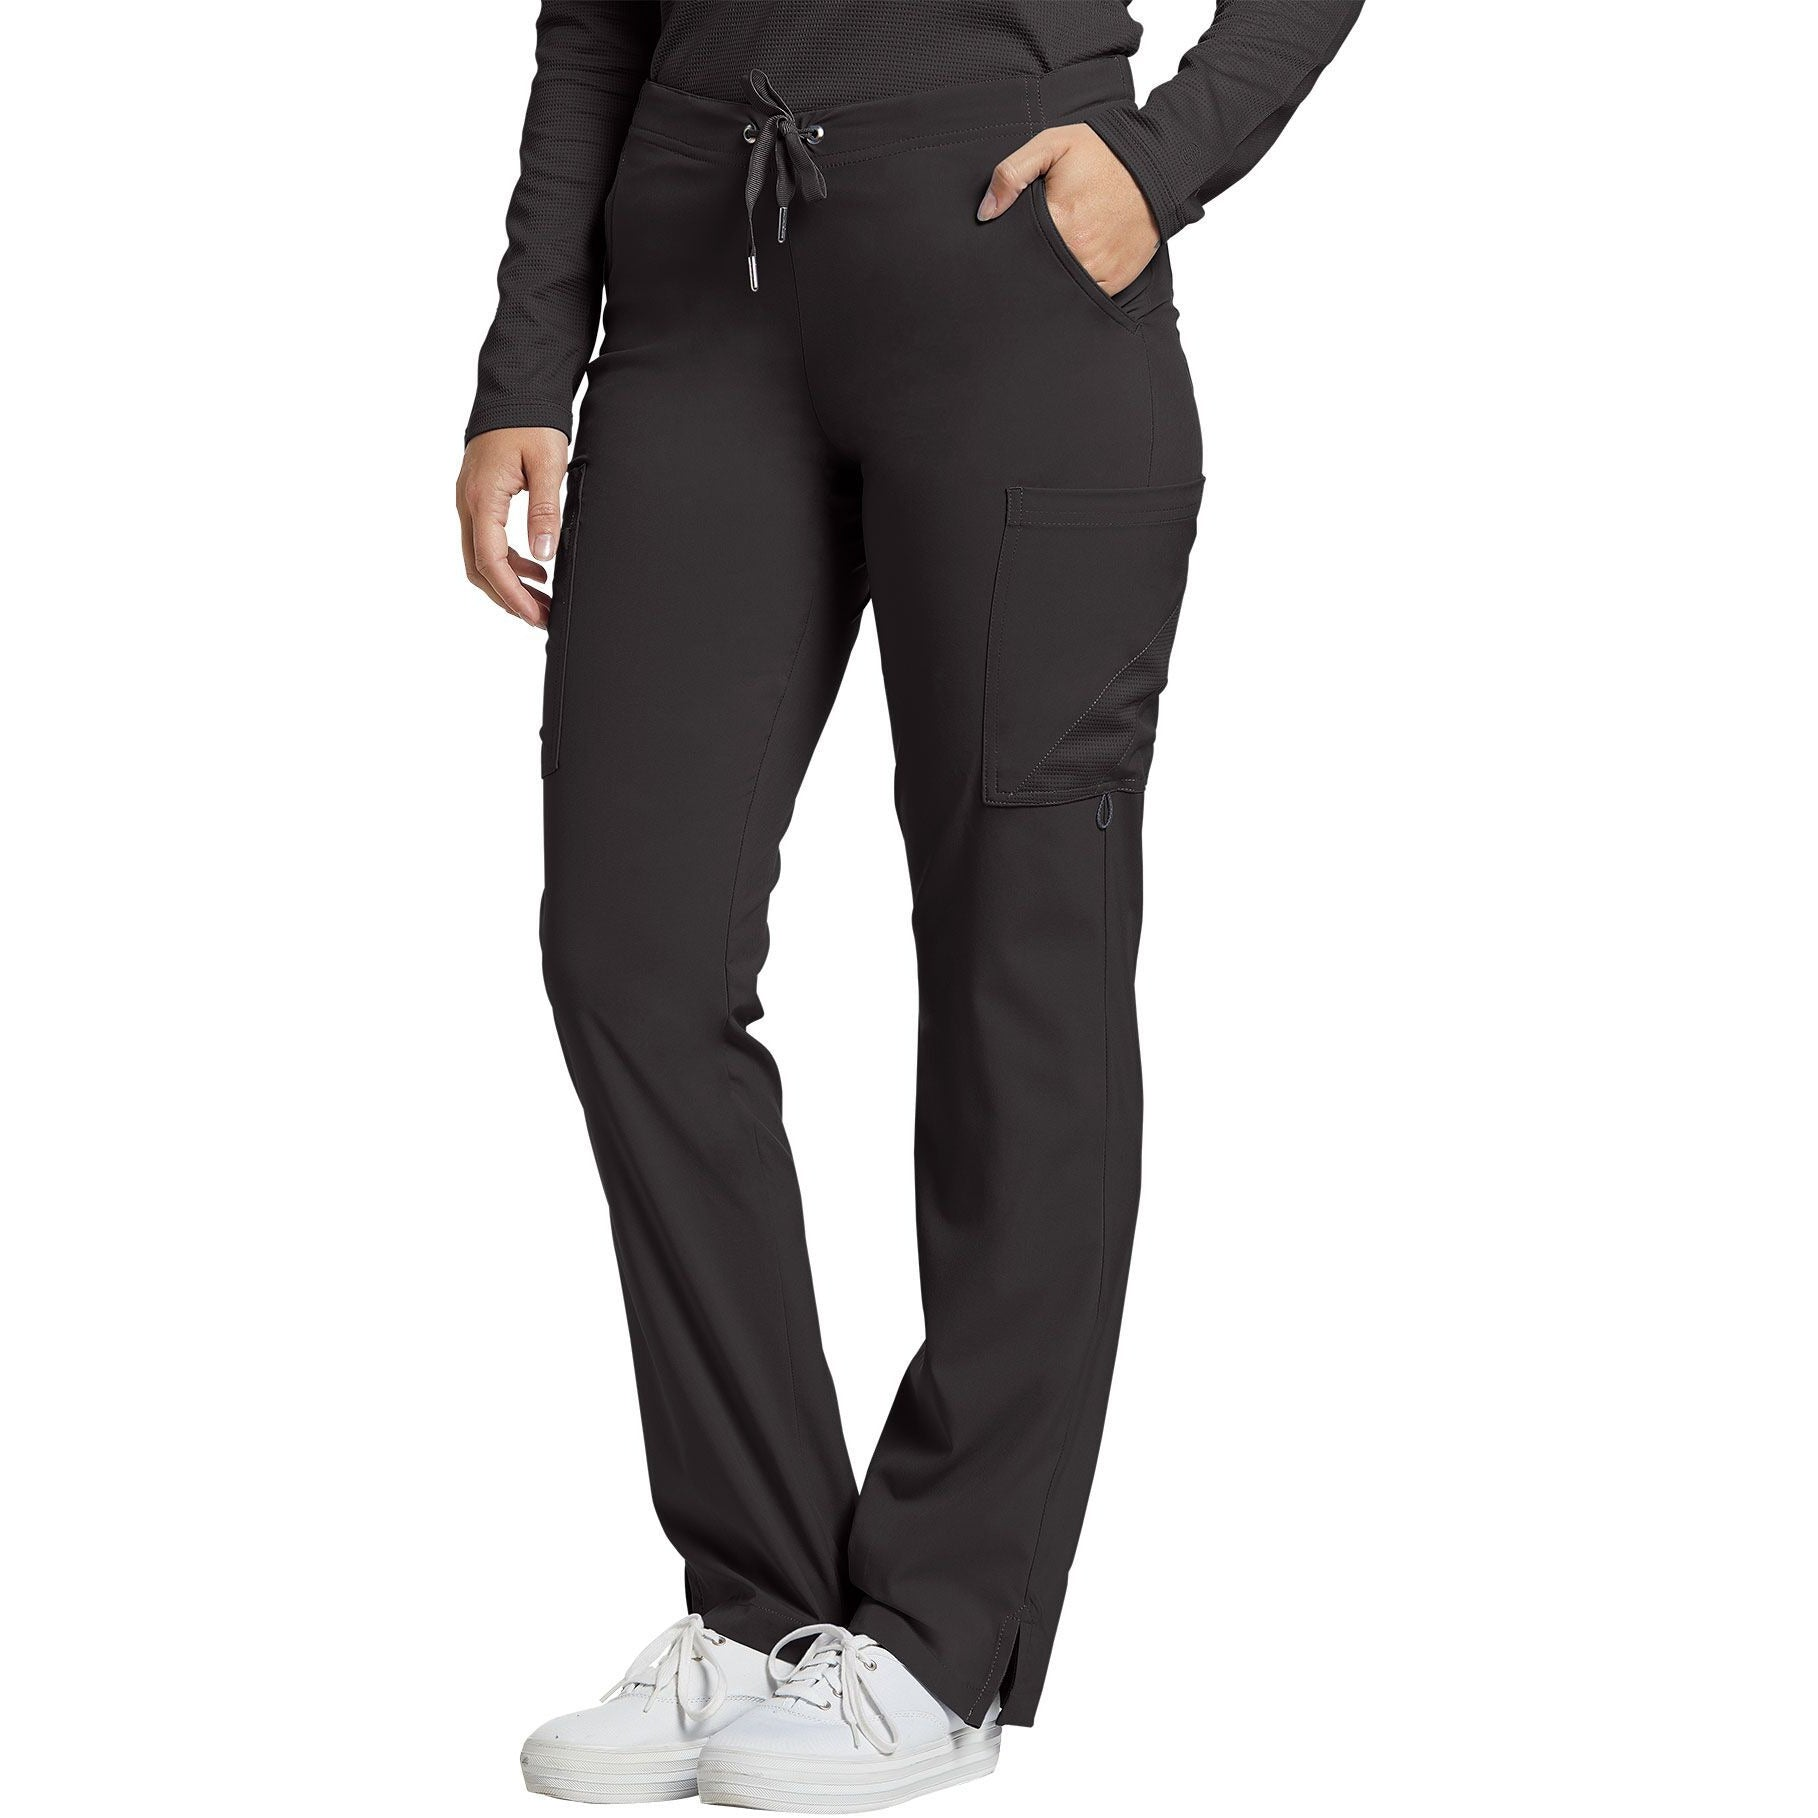 00ff6adc627 397 FIT Cargo Pant